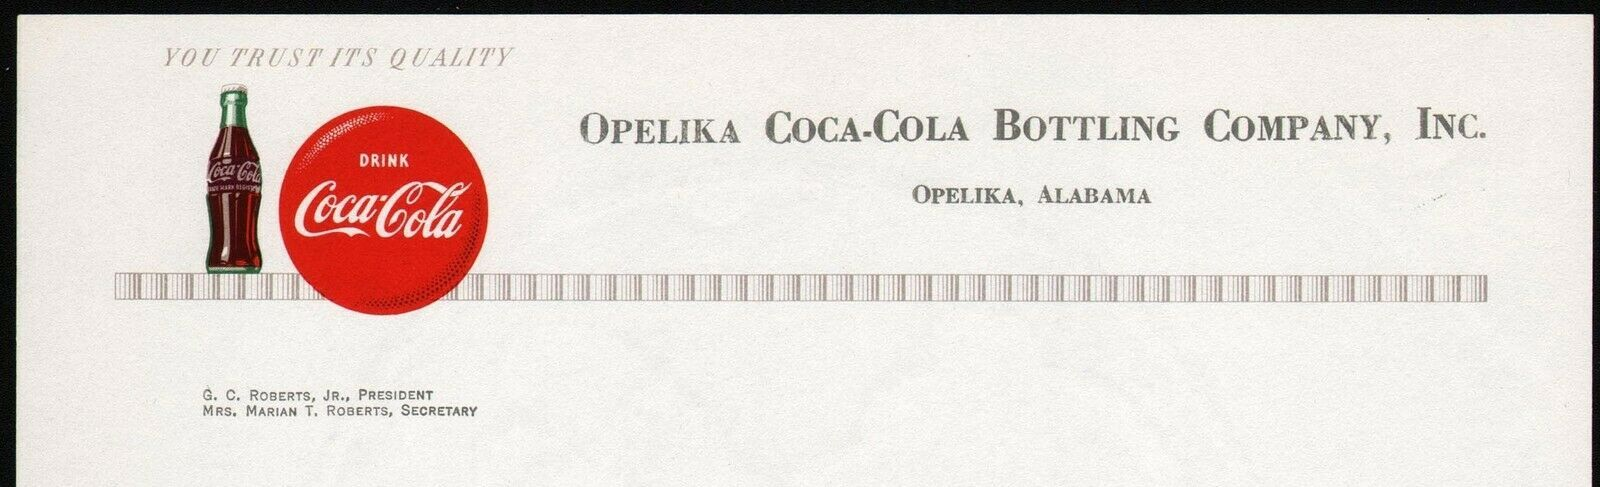 Primary image for Vintage letterhead COCA COLA bottle and button Opelika Alabama unused n-mint+